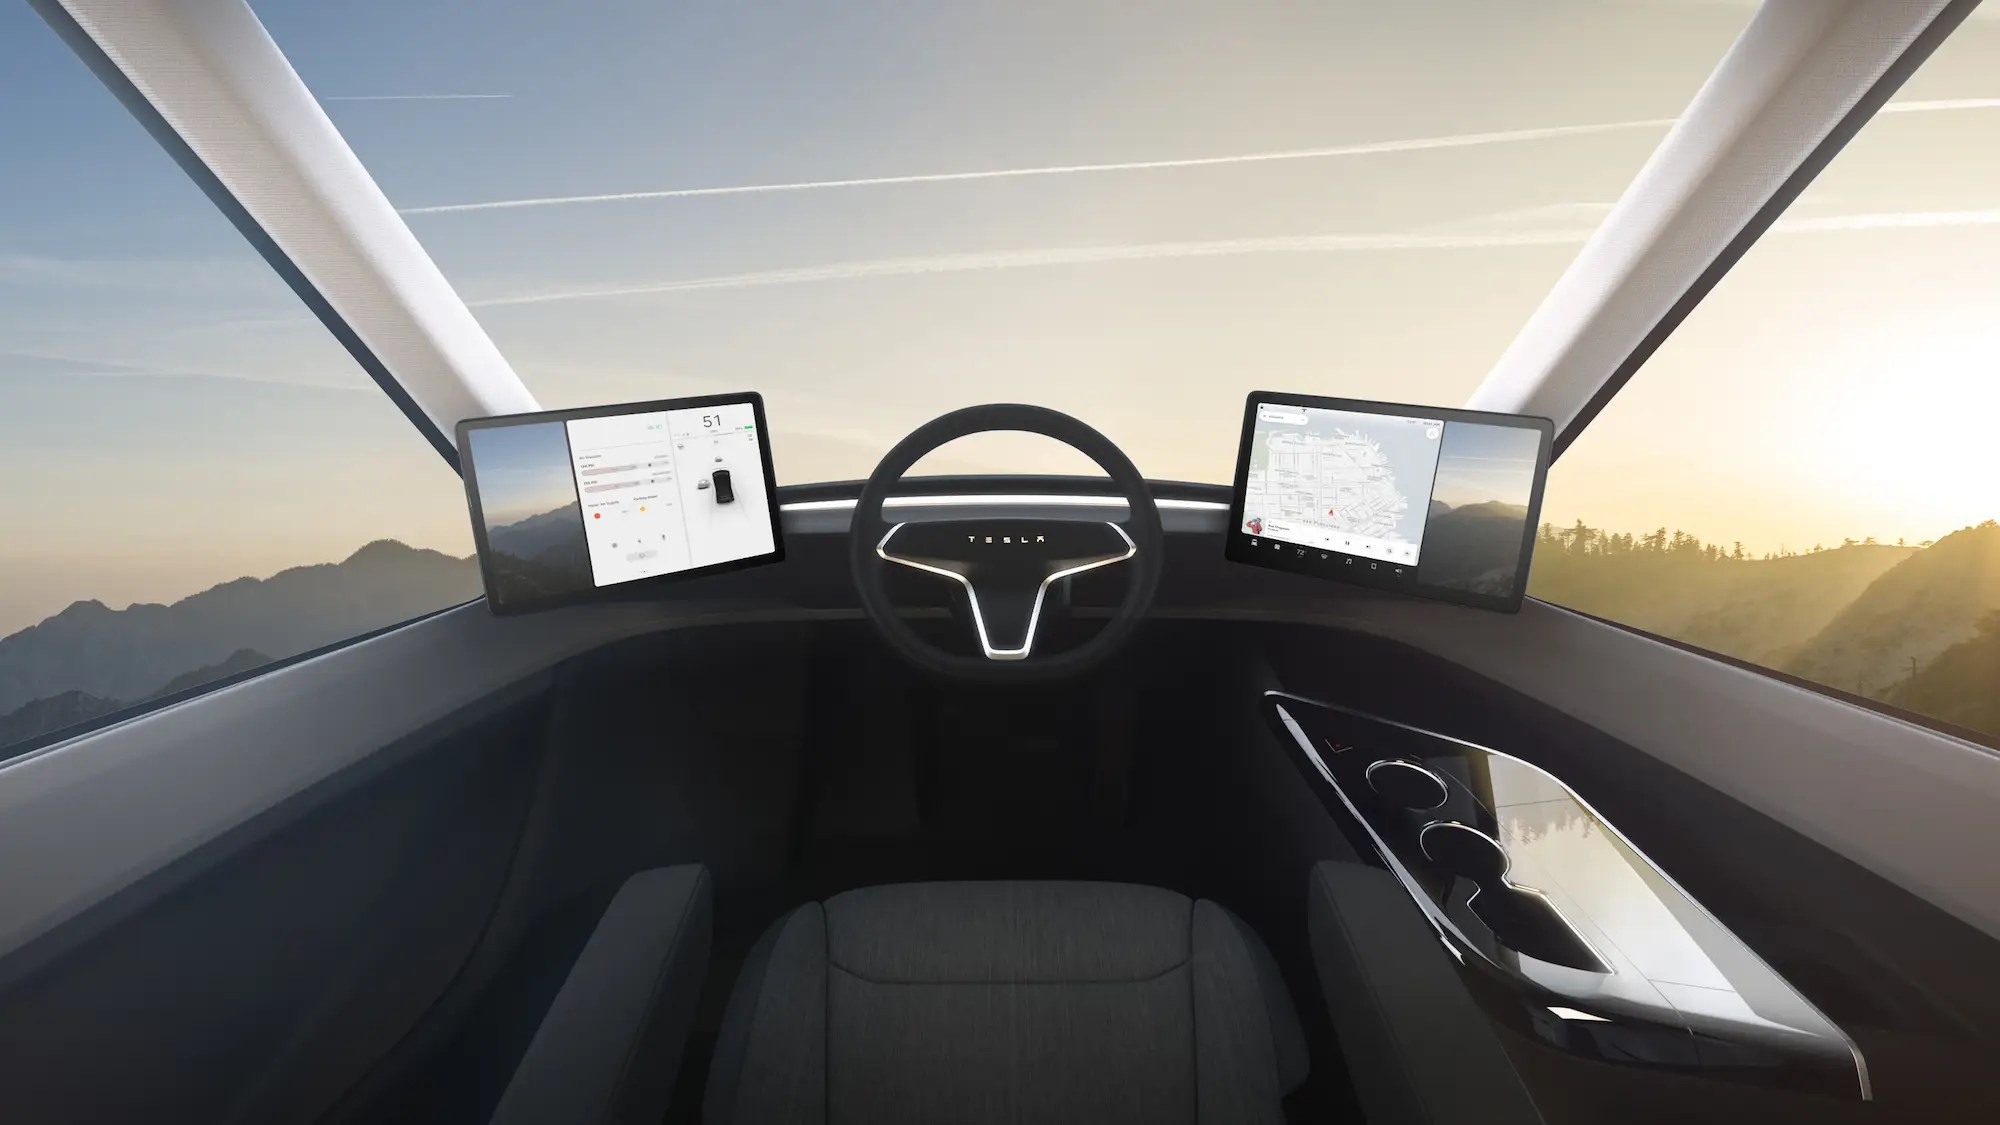 The driver position is placed in the center of the vehicle, instead of on the left side. This helps provide greater visibility to the driver, Musk said.